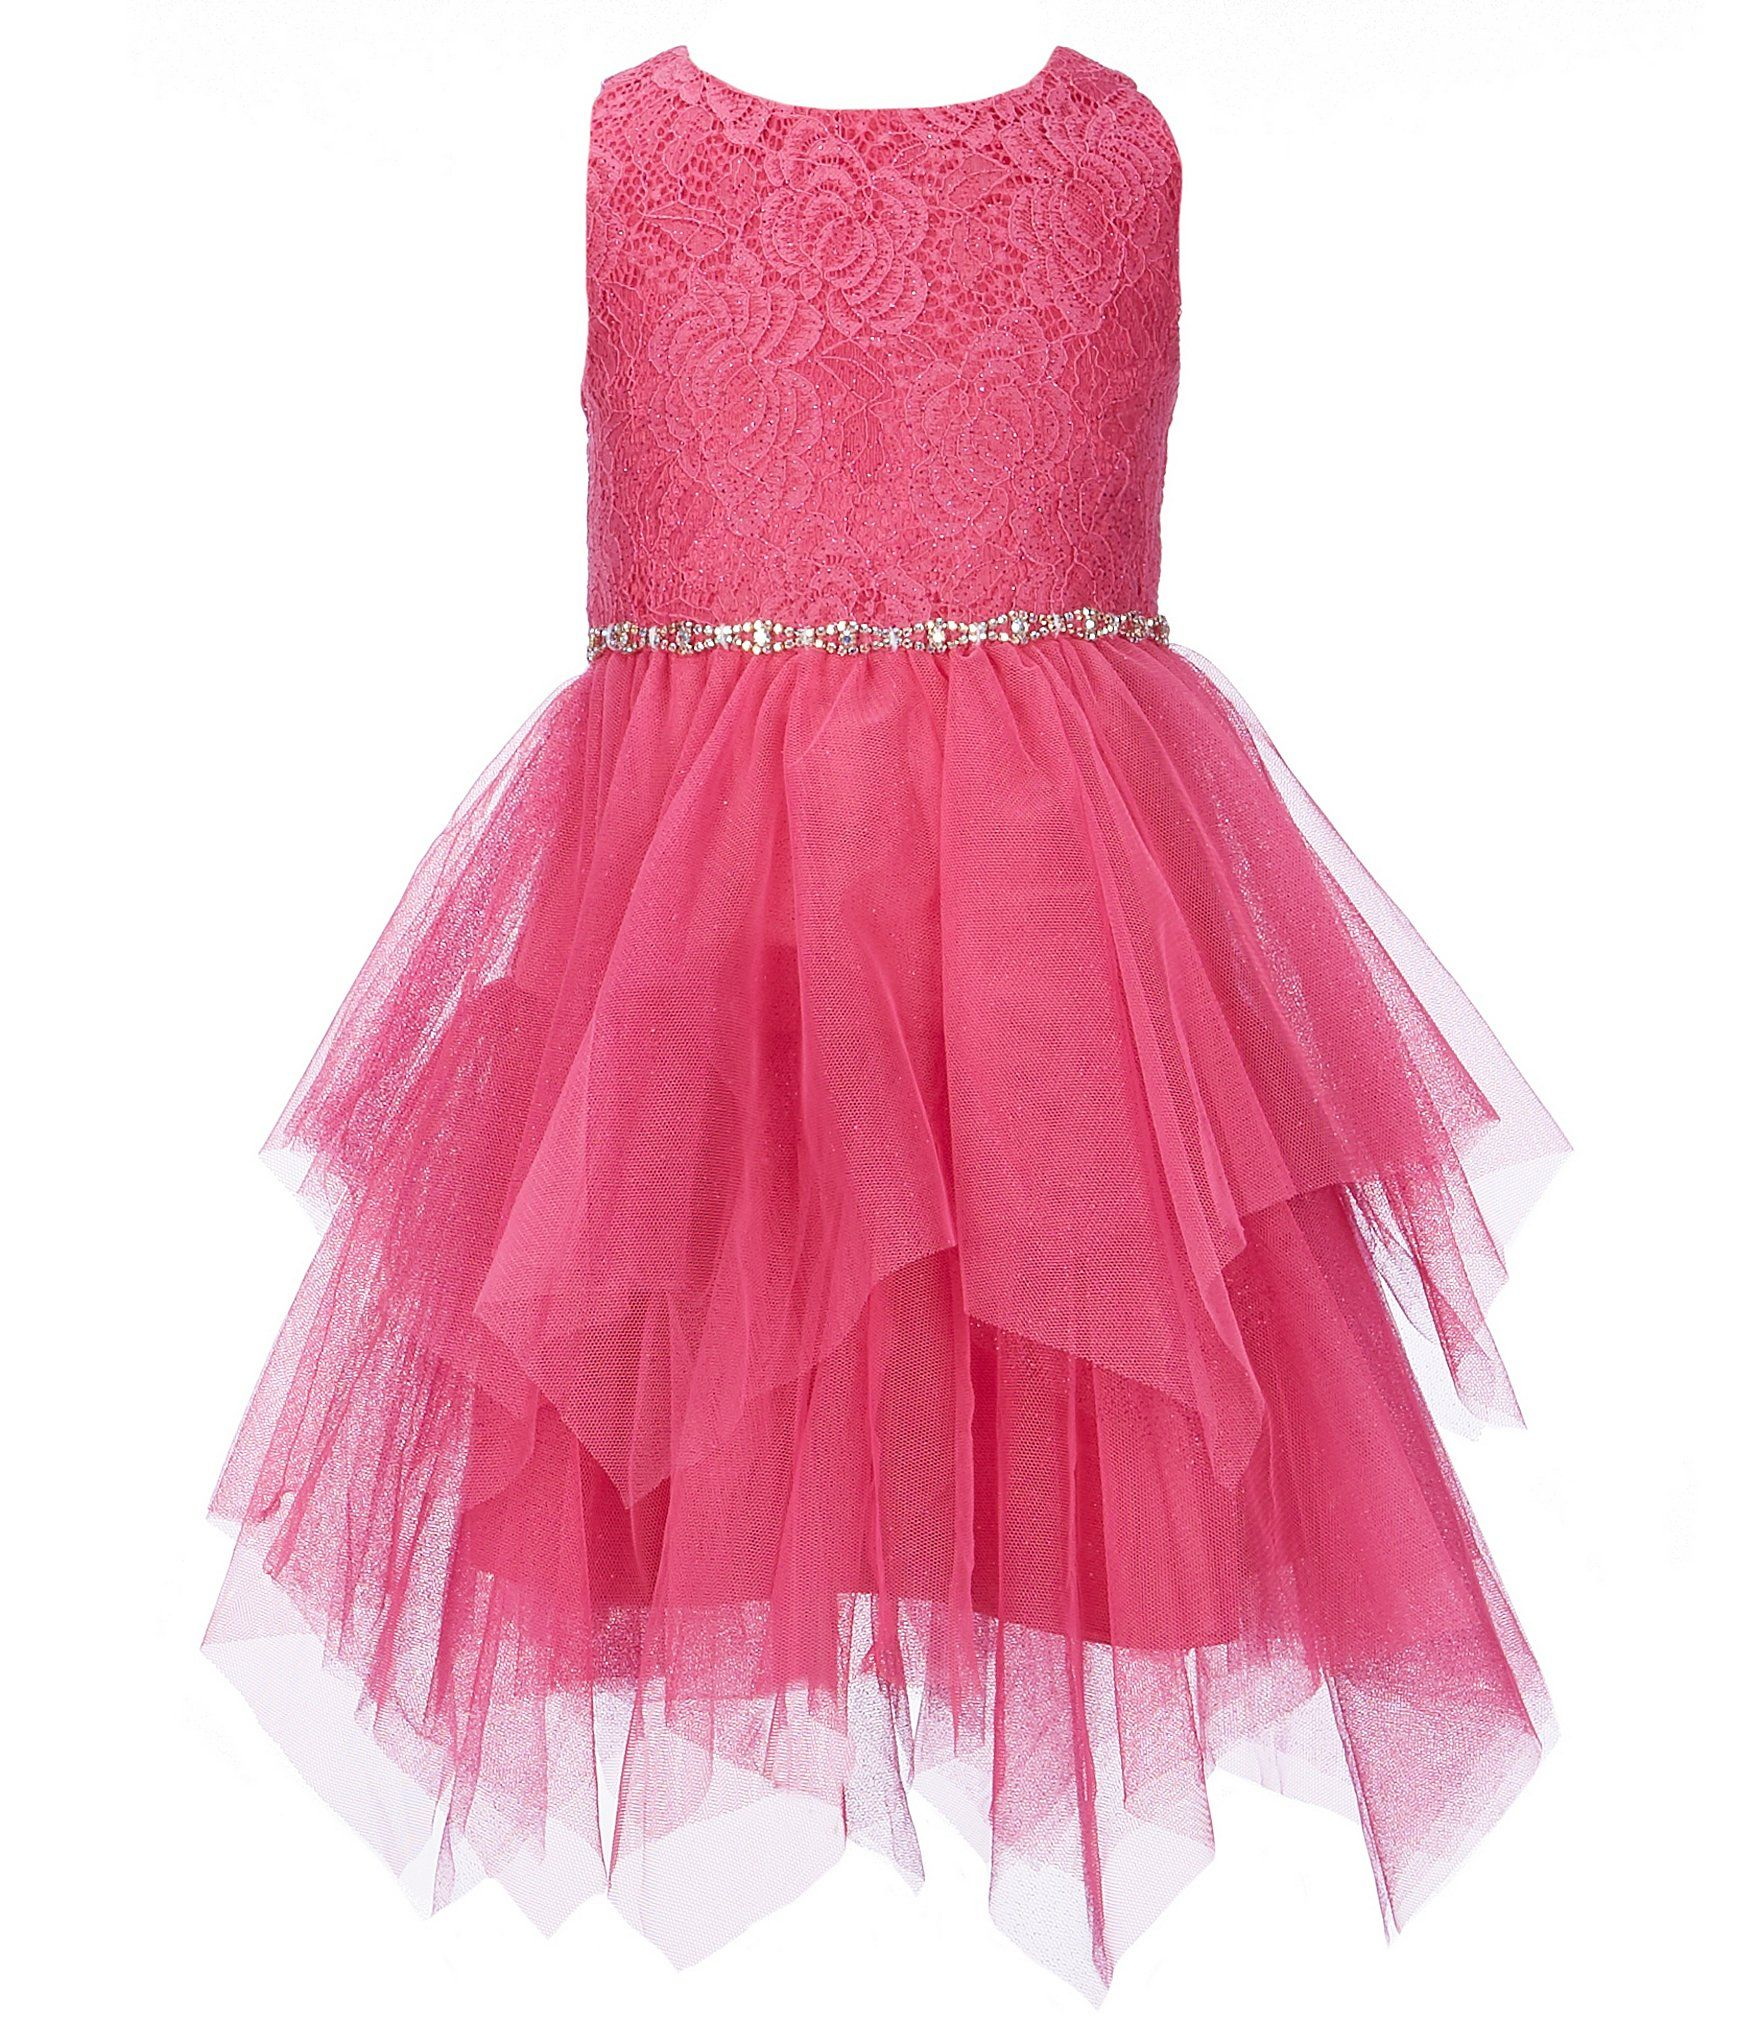 51c6a3388c5d Shop for Rare Editions Little Girls 2T-6X Glitter Lace Fairy Hem Dress at  Dillards.com. Visit Dillards.com to find clothing, accessories, shoes, ...